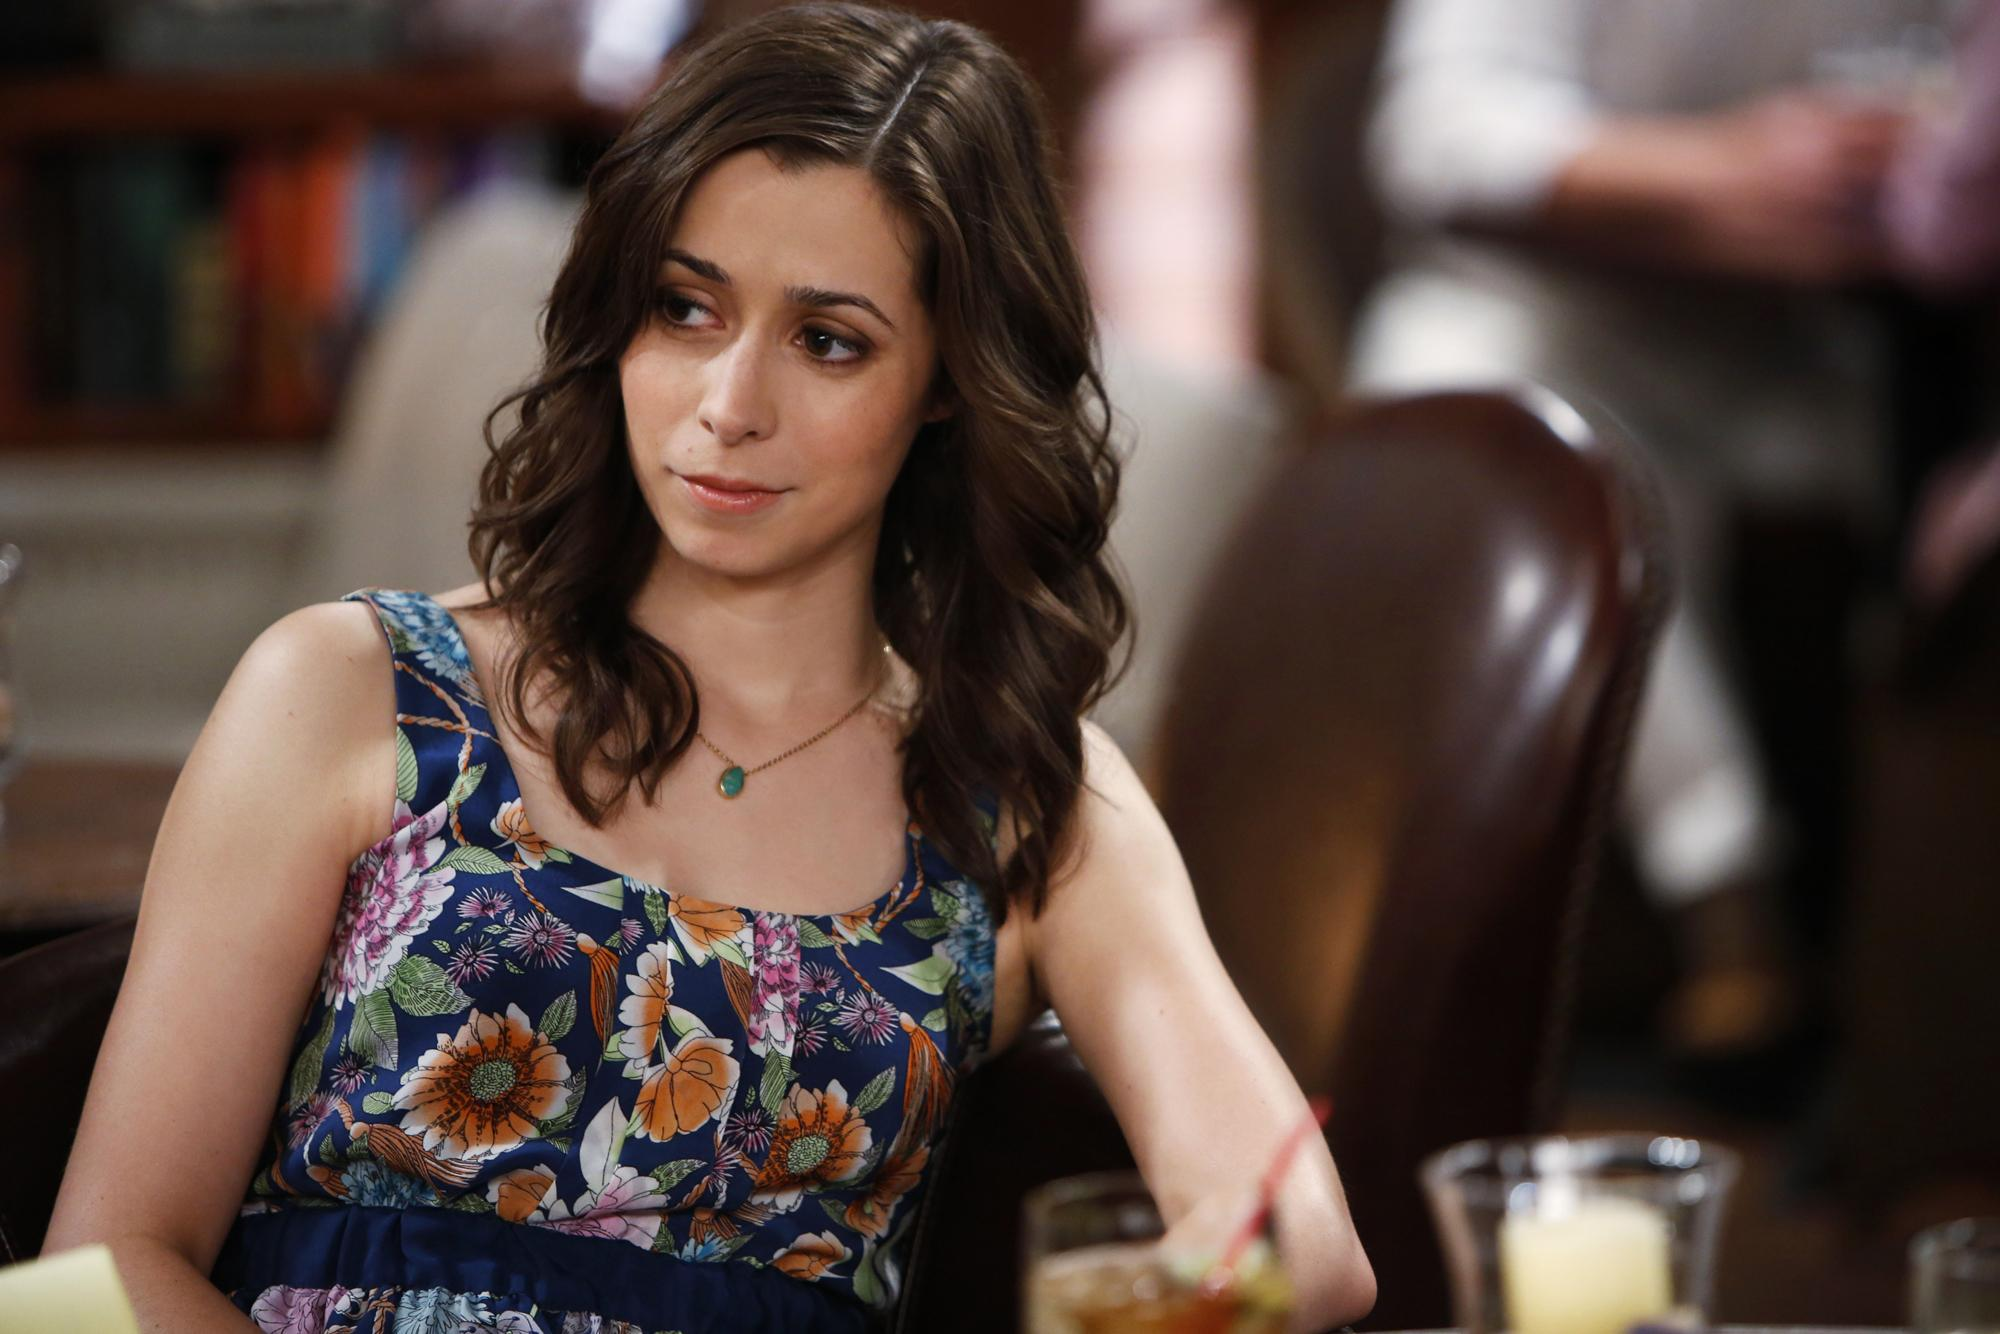 'How I Met Your Mother' spin-off is still on the agenda